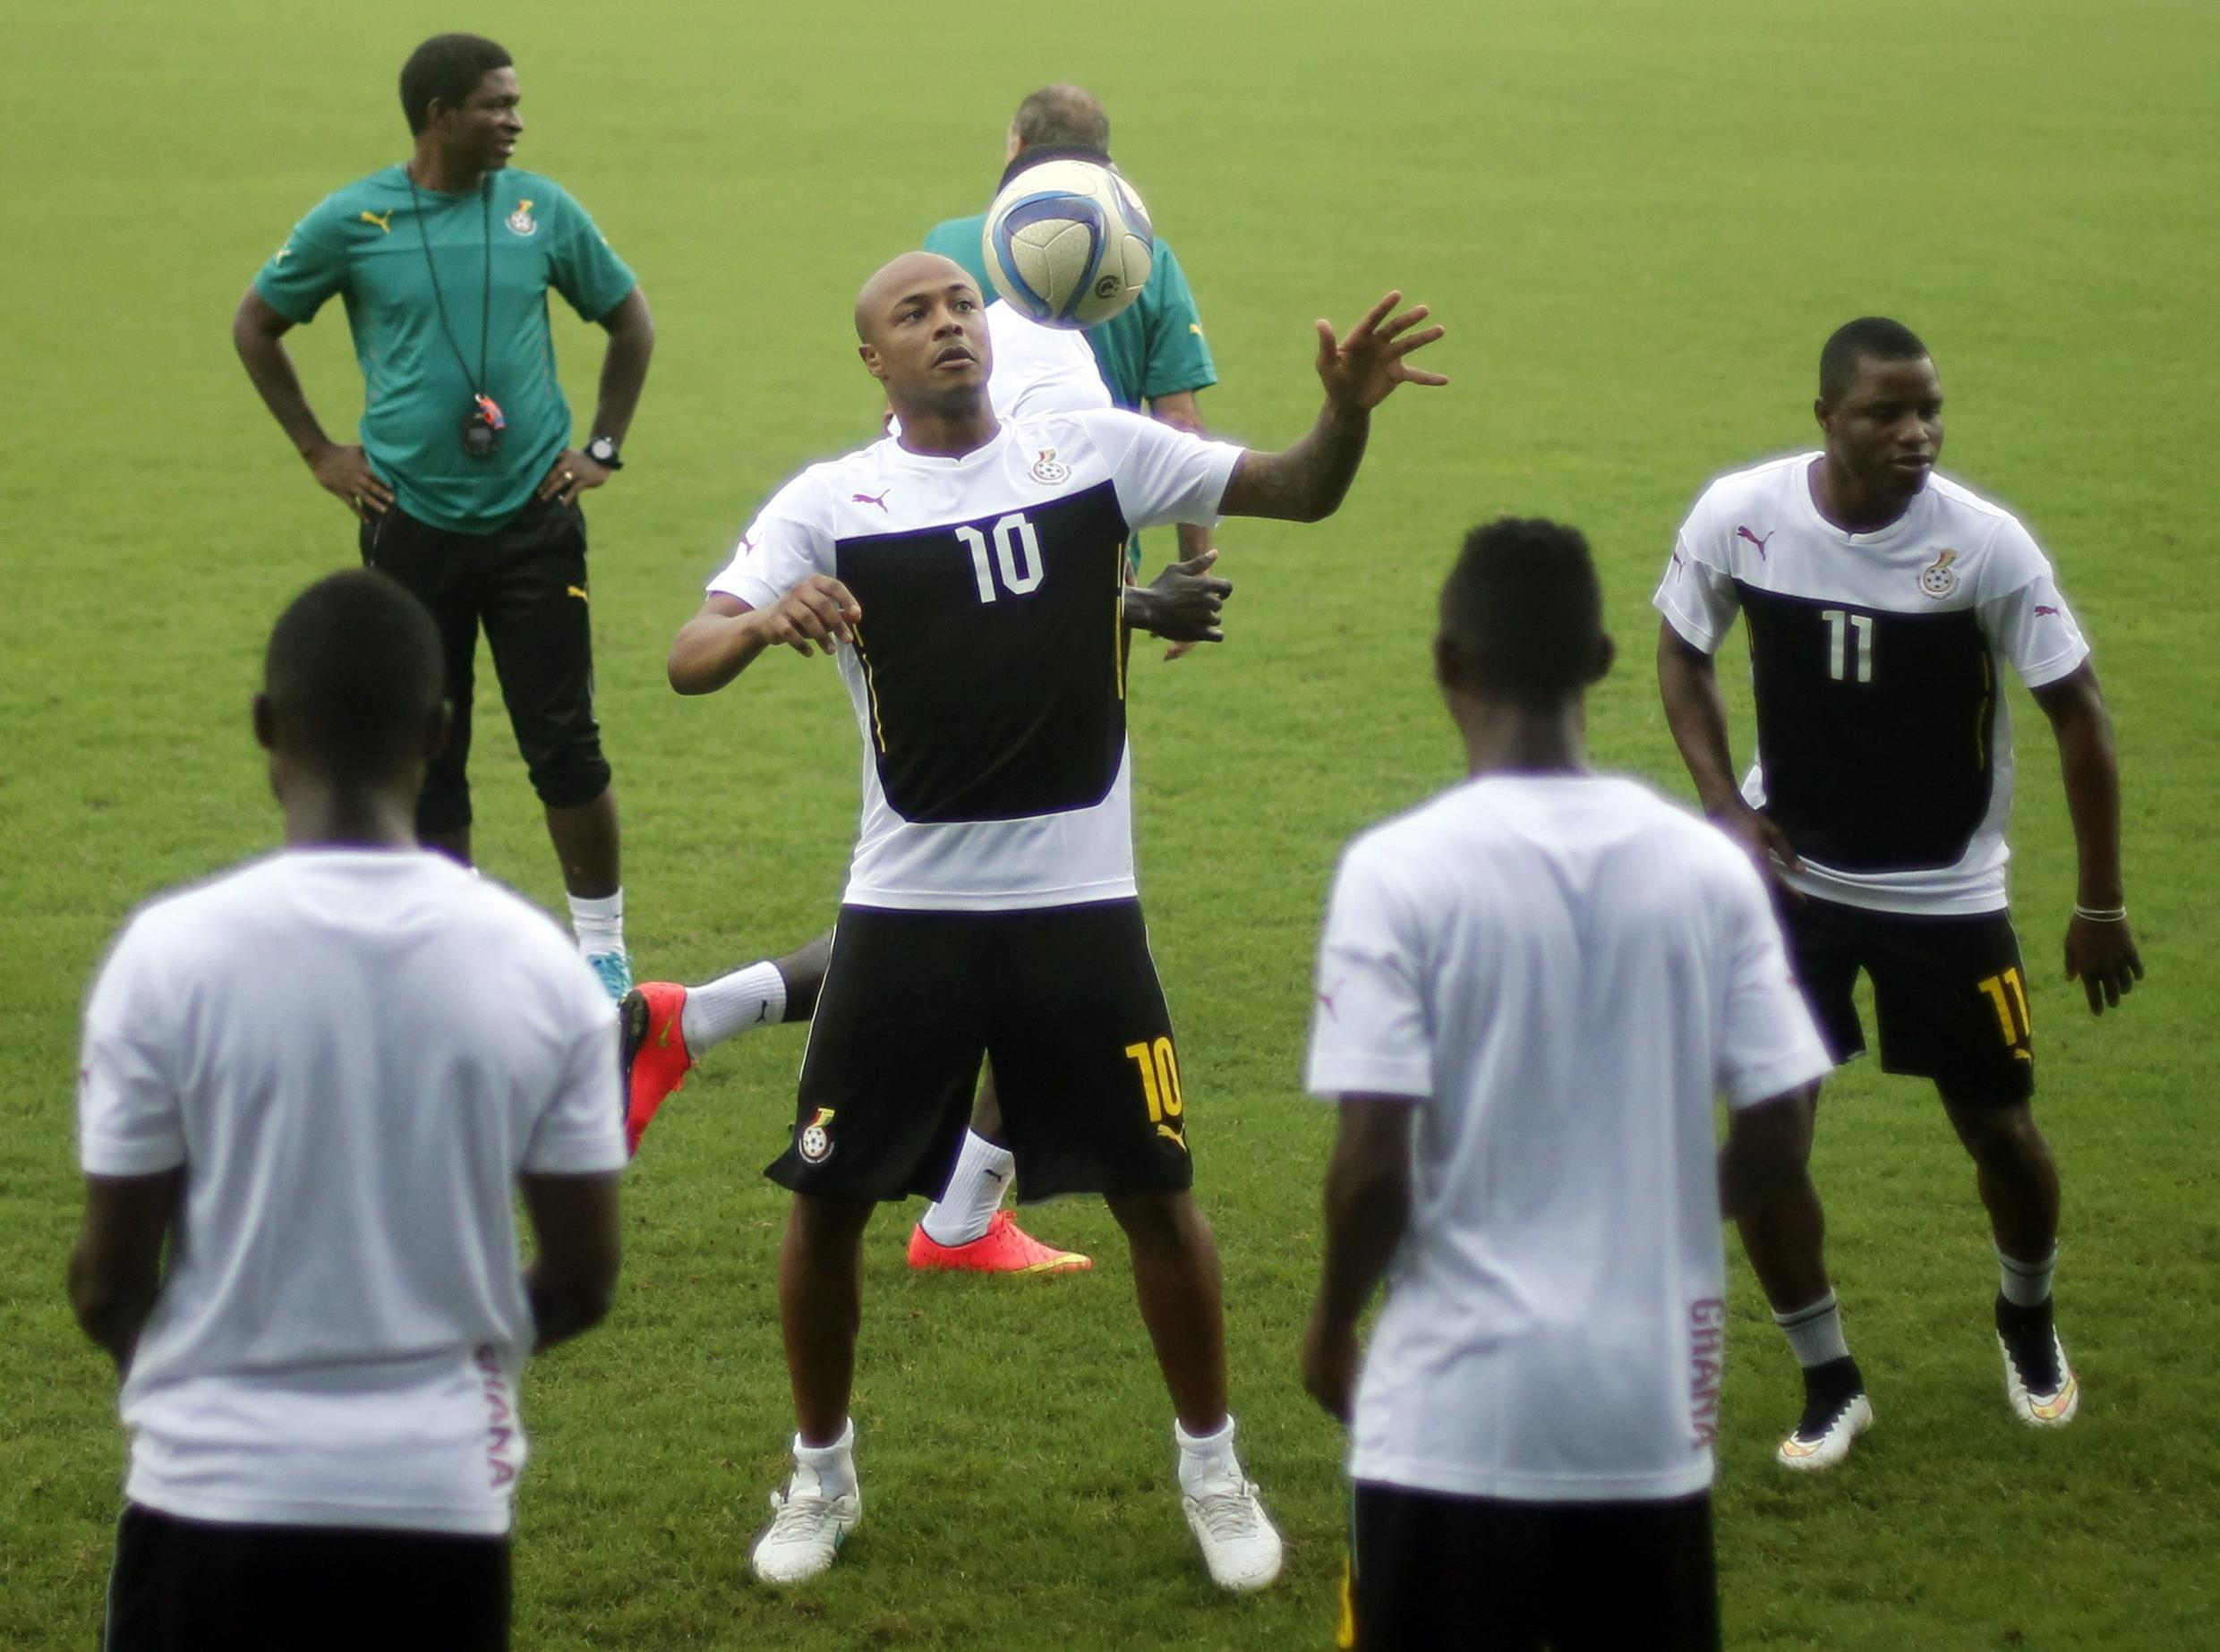 Ghana's Andre Ayew at a training session at Bikuy on the outskirts of Bata on Saturday